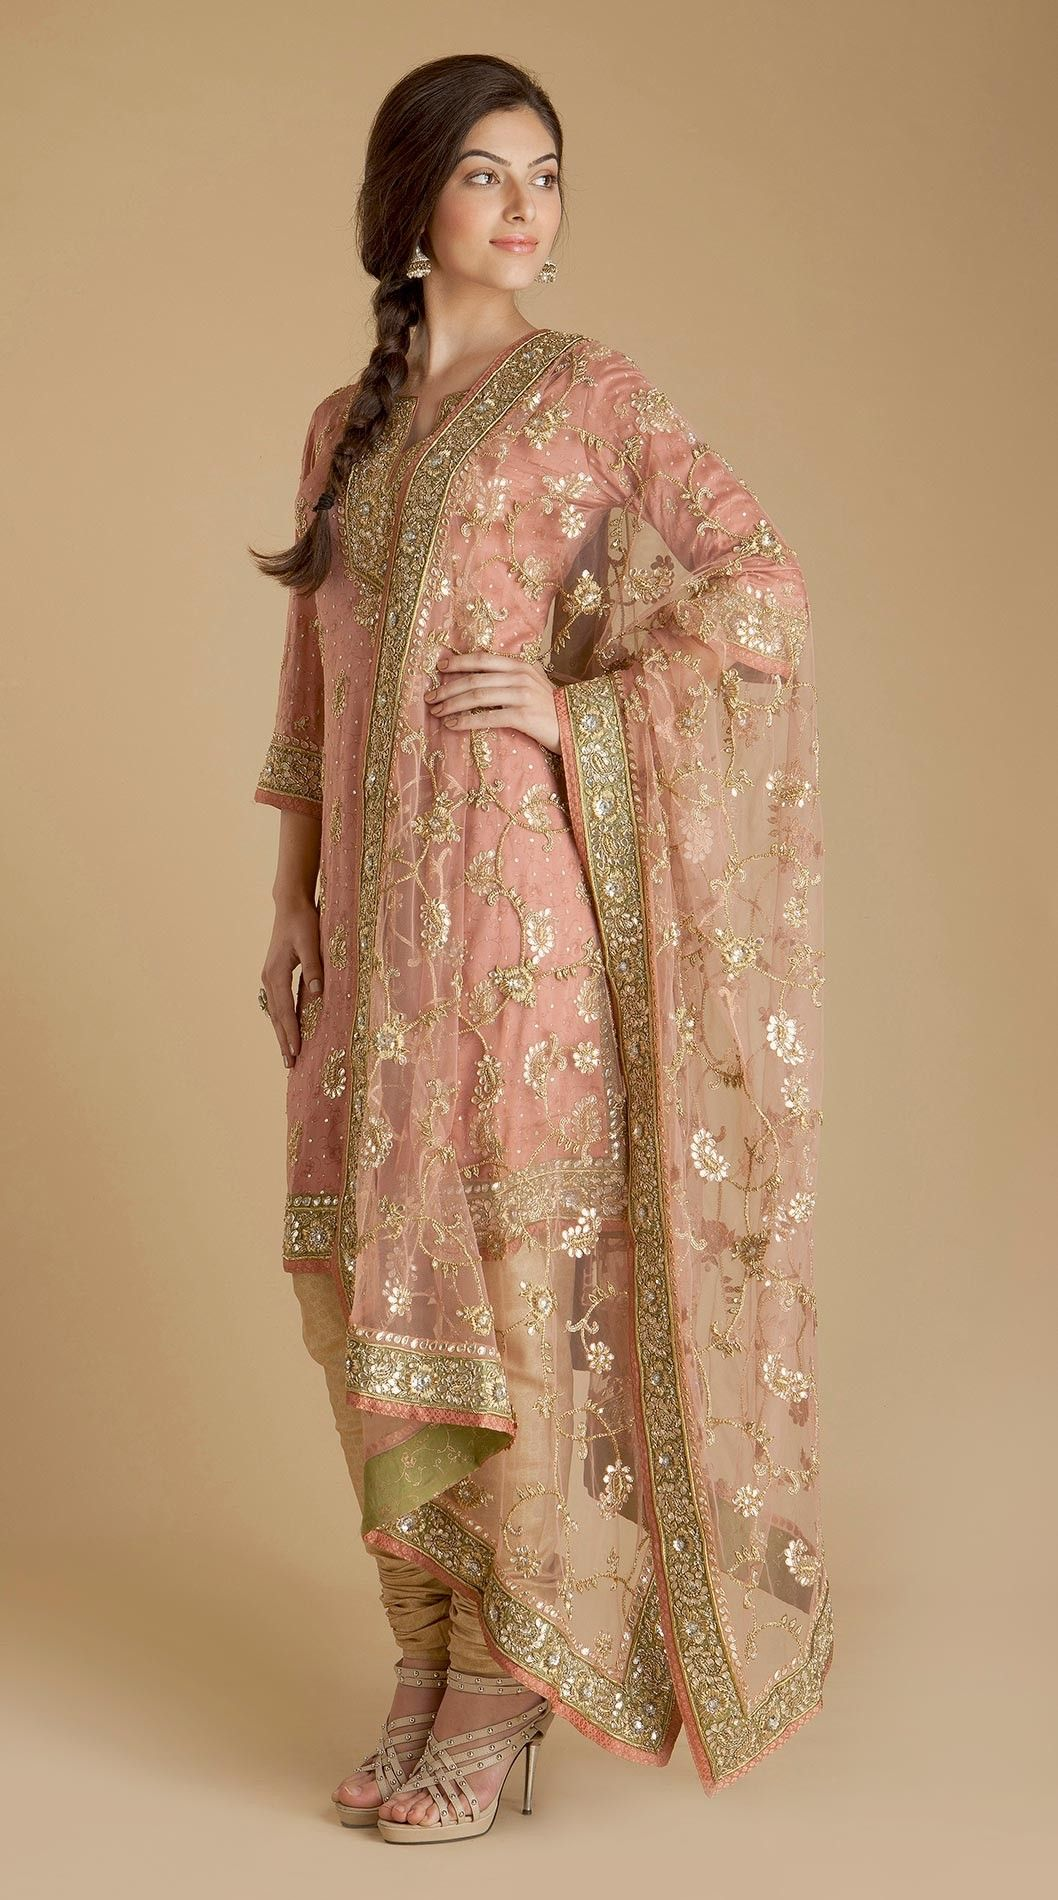 Pretty Light Pink Salwar And Kurta With Dupatta Indian